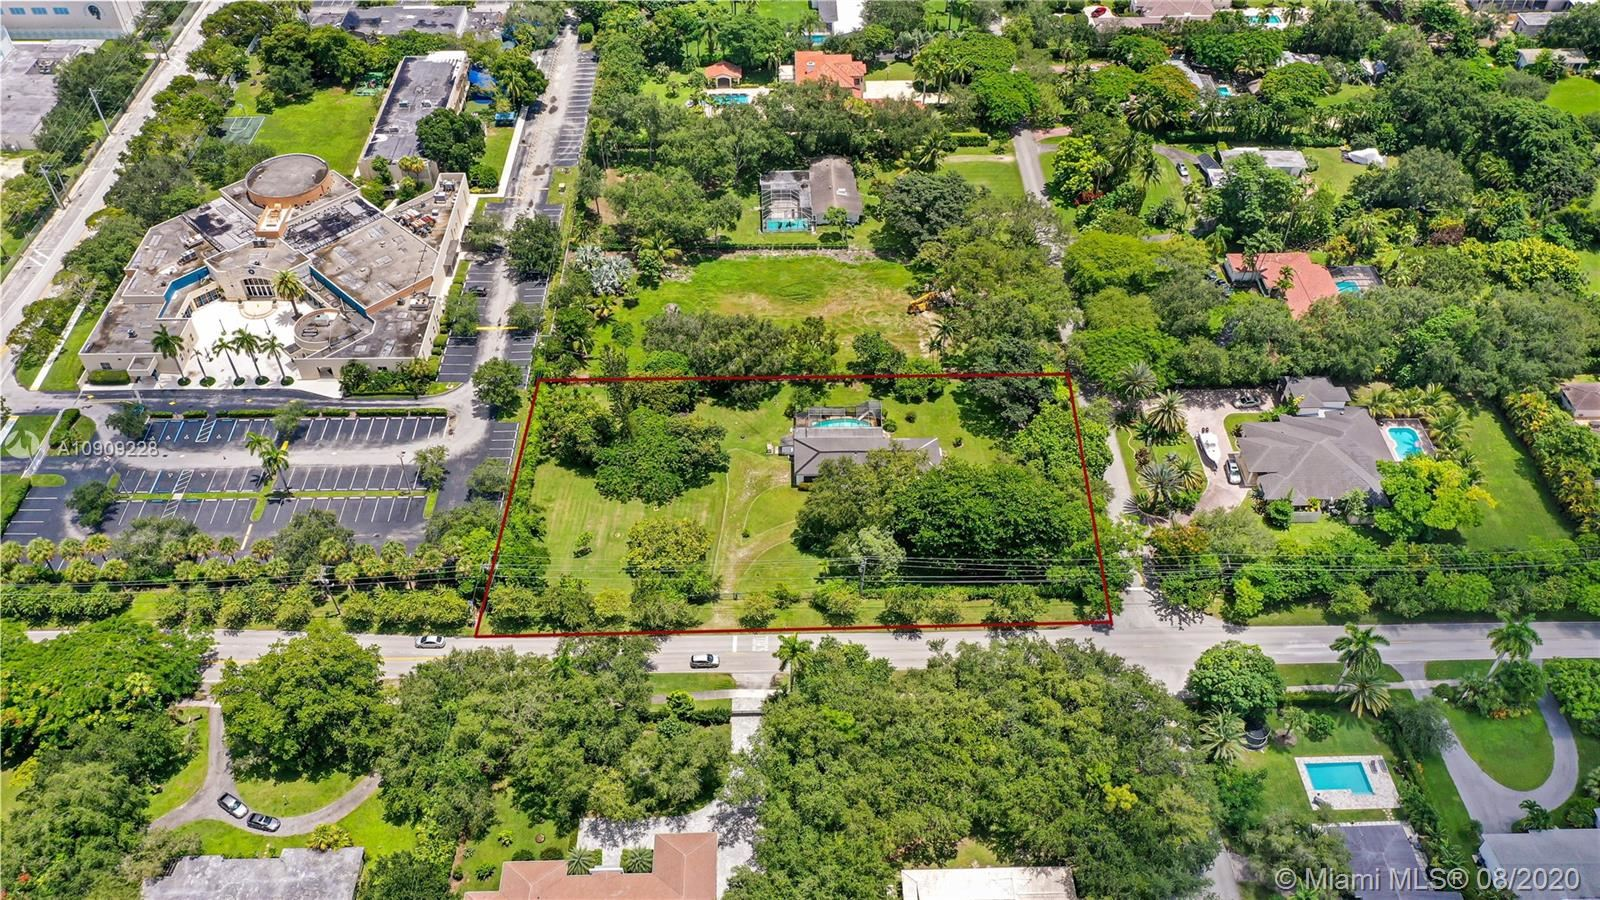 12121 SW 77th Ave, Pinecrest, FL 33156 - #: A10909228